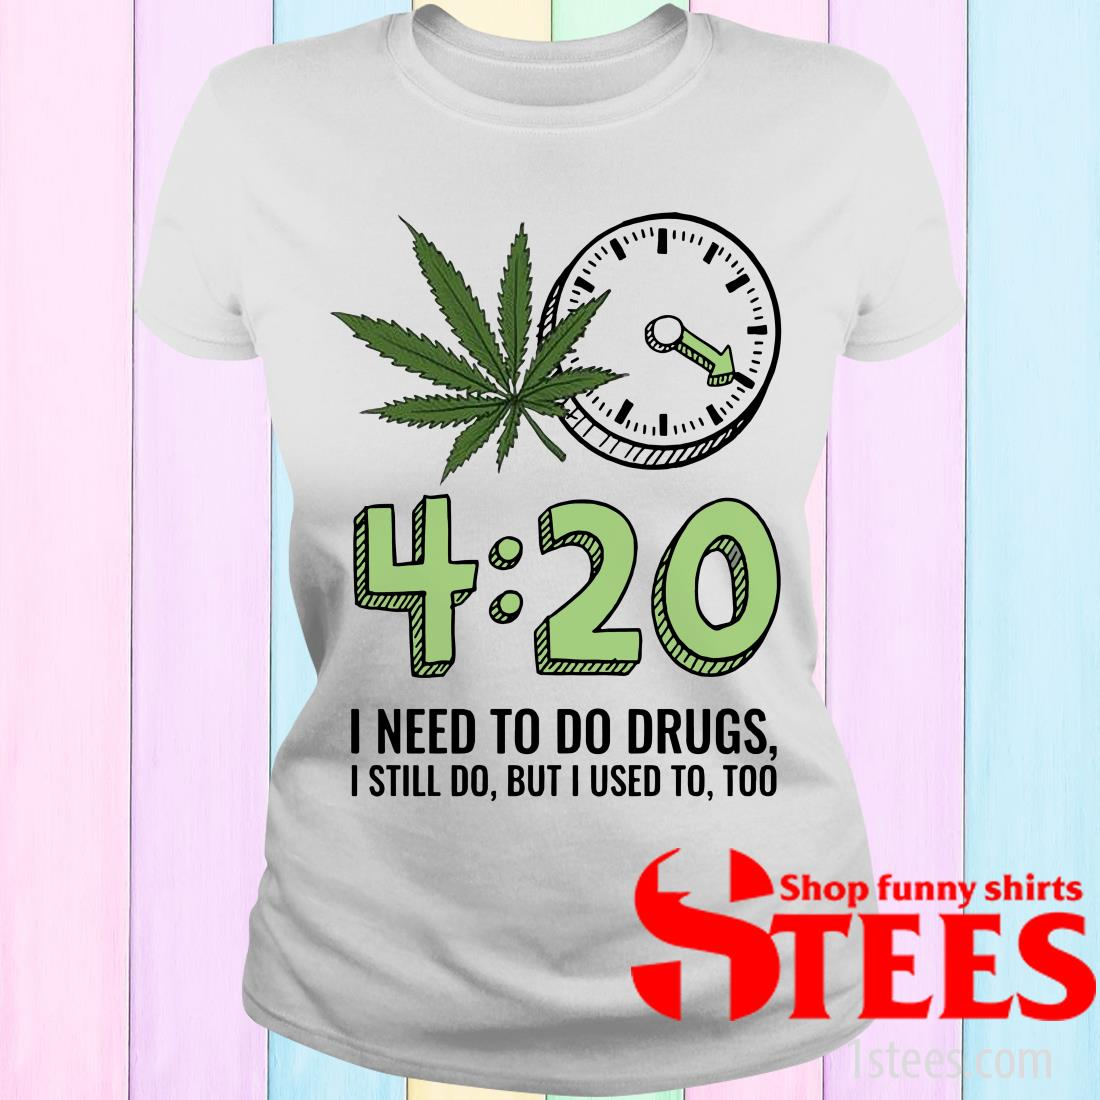 420 I Need To Do Drugs, I Still Do, But I Used To, Too Women's T-Shirt